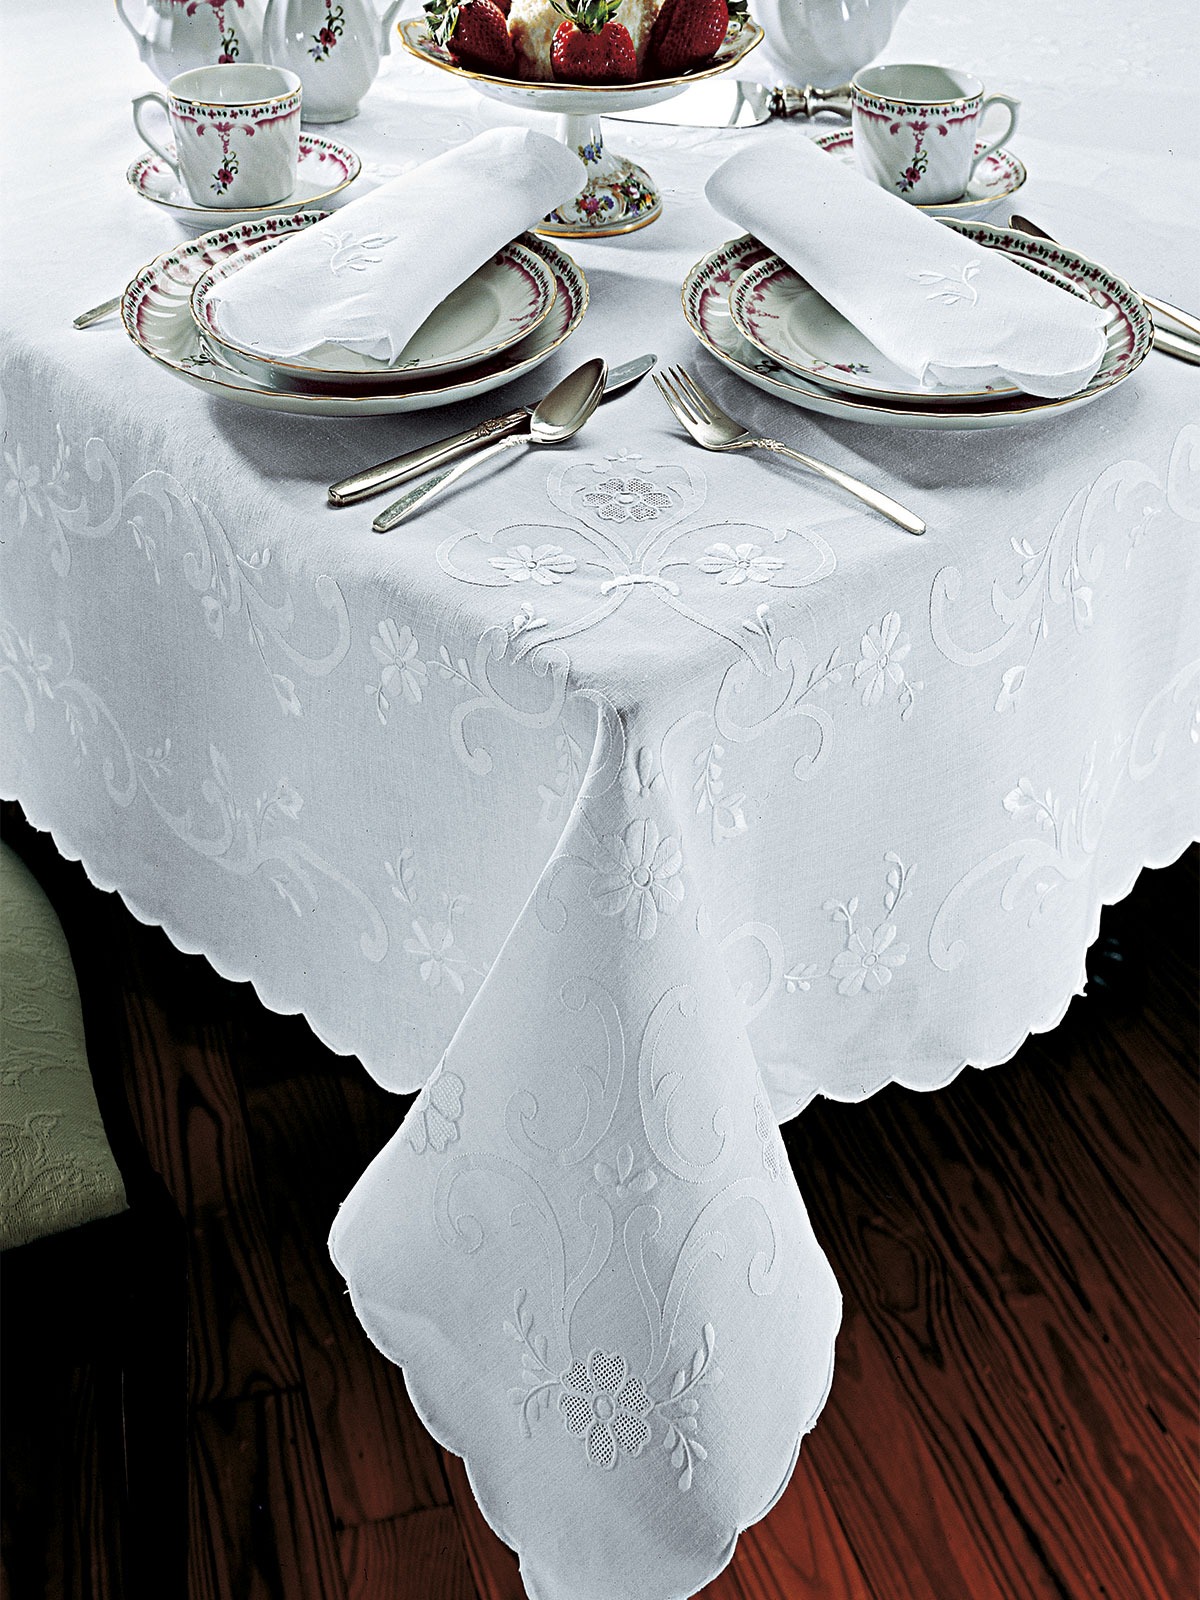 Patrician Luxury Table Cloths Fine Table Linens  : TCPatrician from schweitzerlinen.com size 1200 x 1600 jpeg 443kB